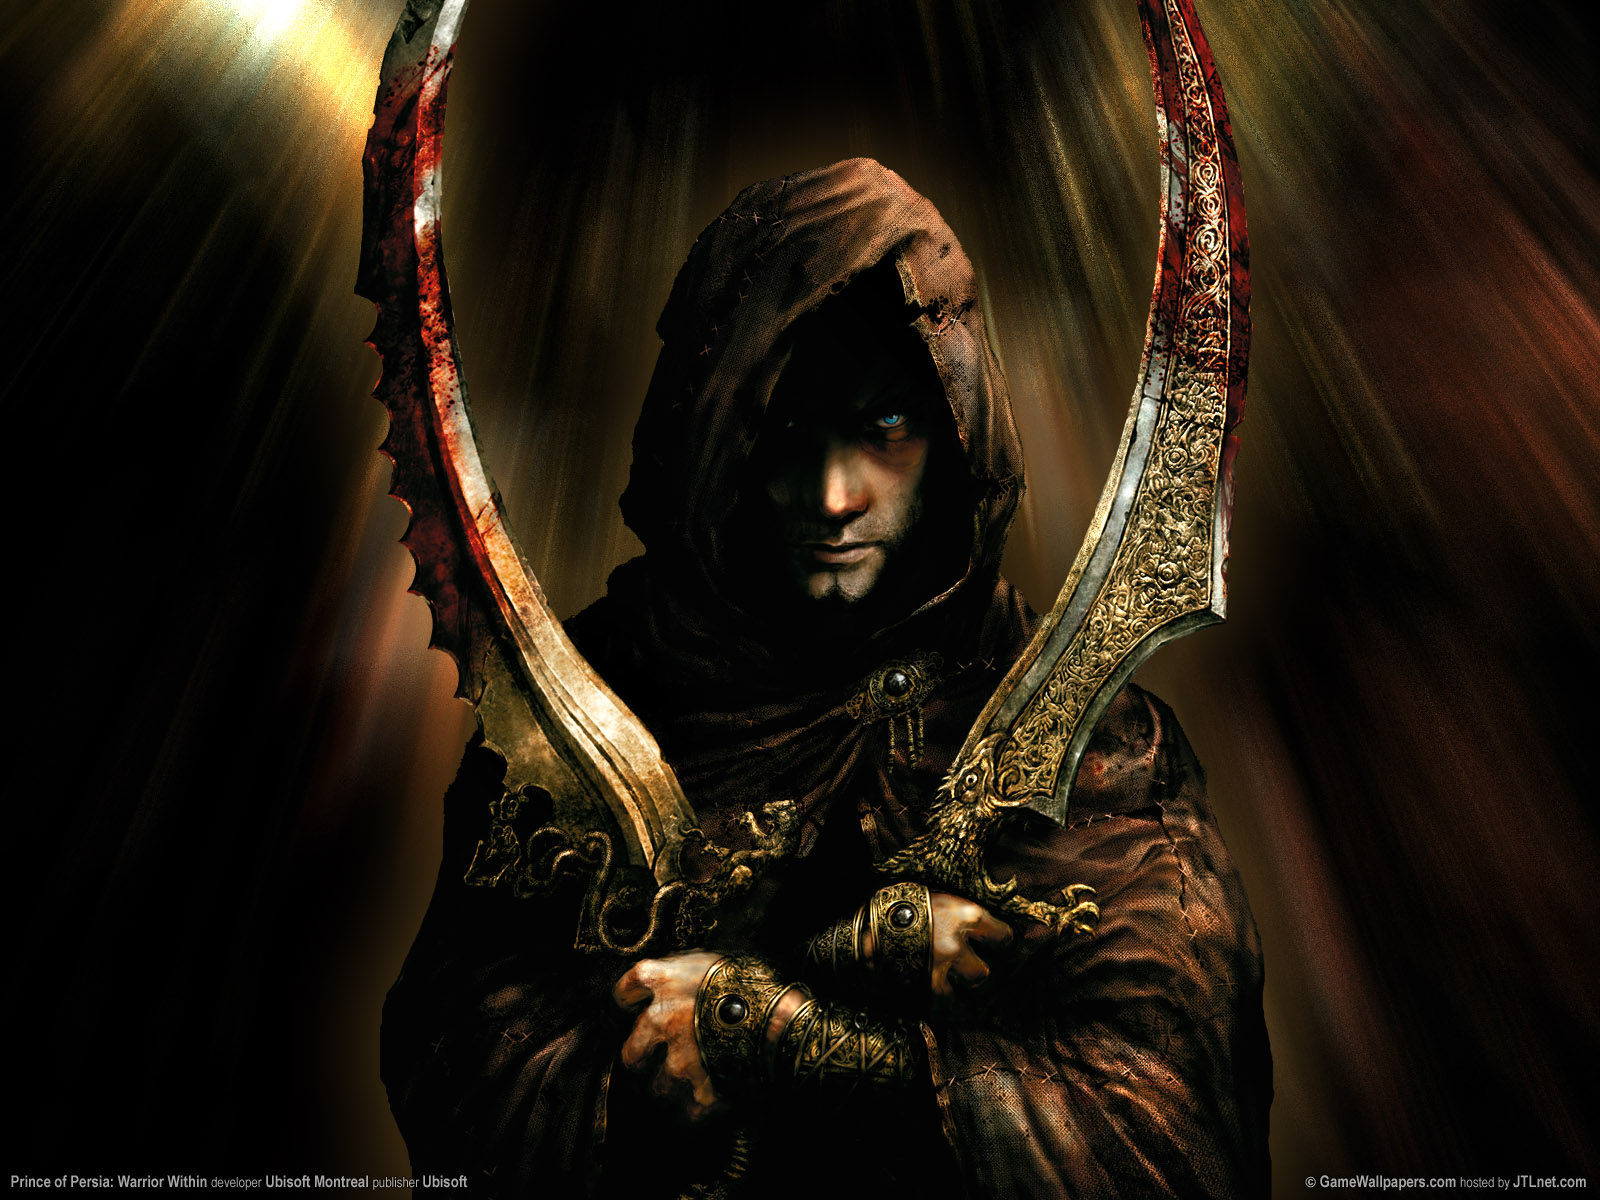 HD wallpapers|Free Games|Latest Updates: Prince of Persia:Warrior With In